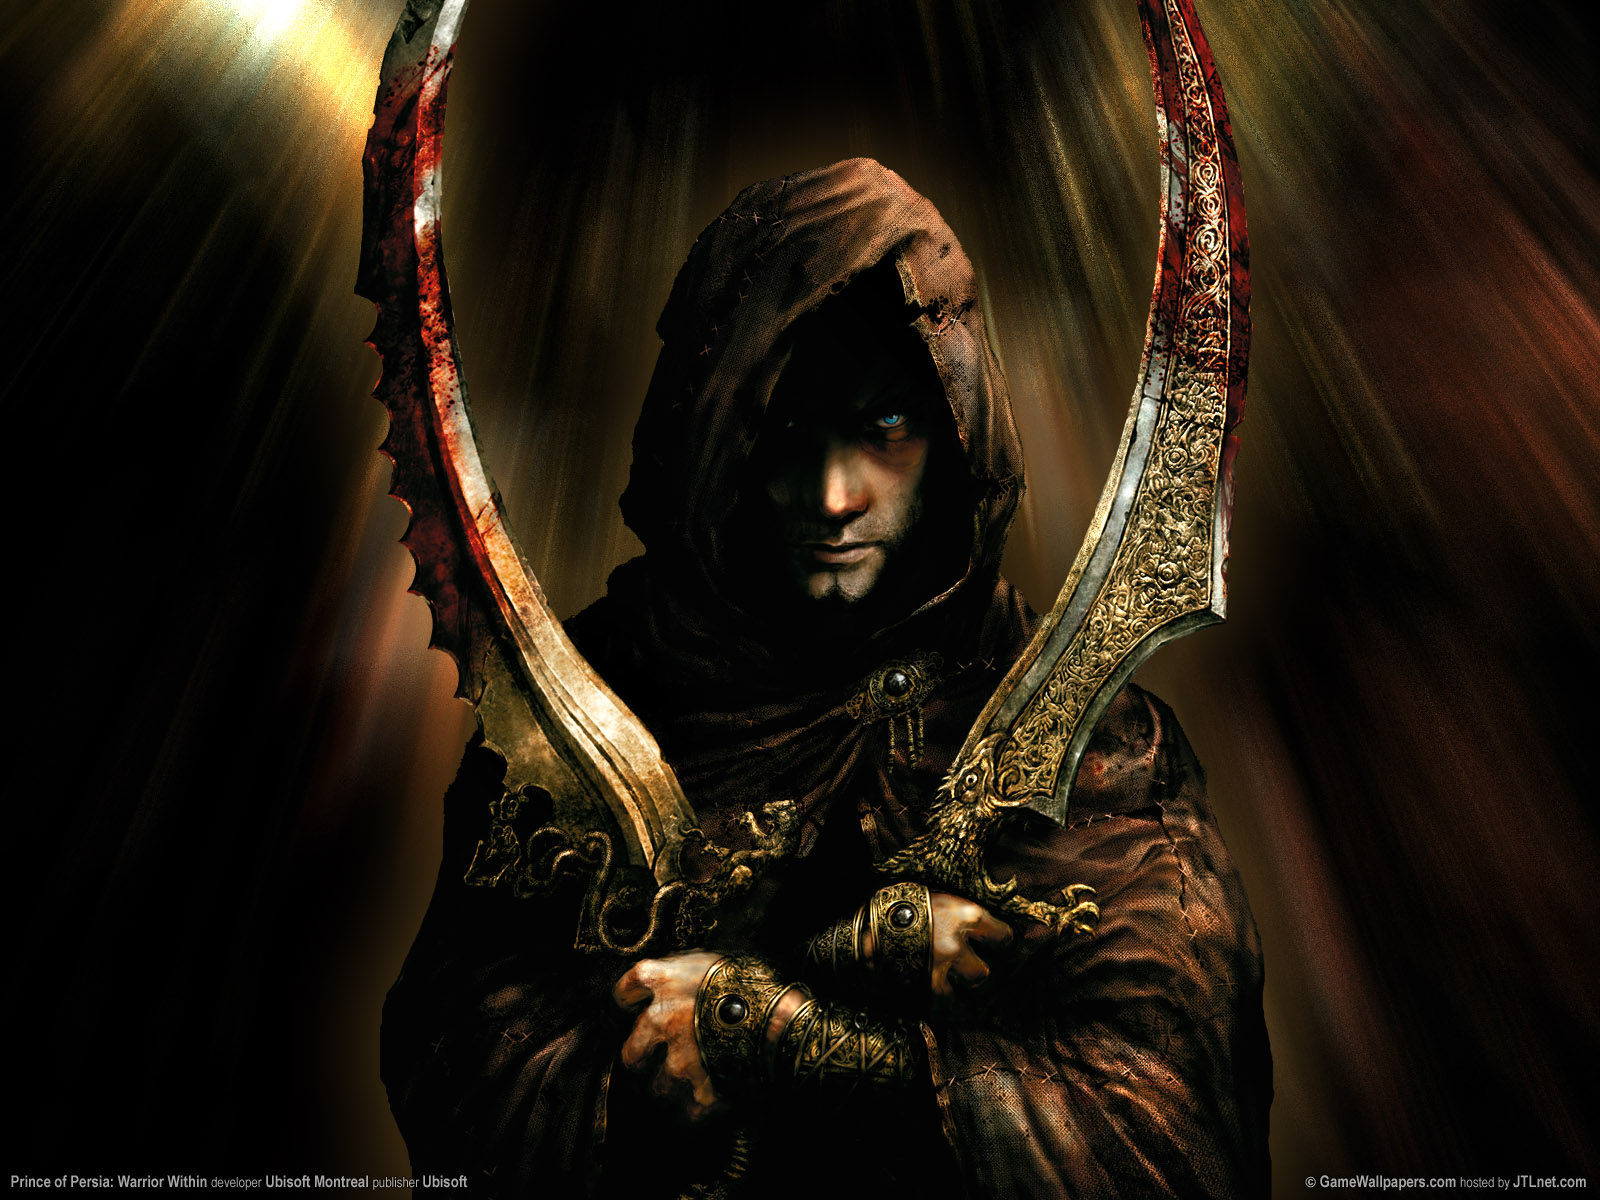 HD wallpapers|Free Games|Latest Updates: Prince of Persia:Warrior With In